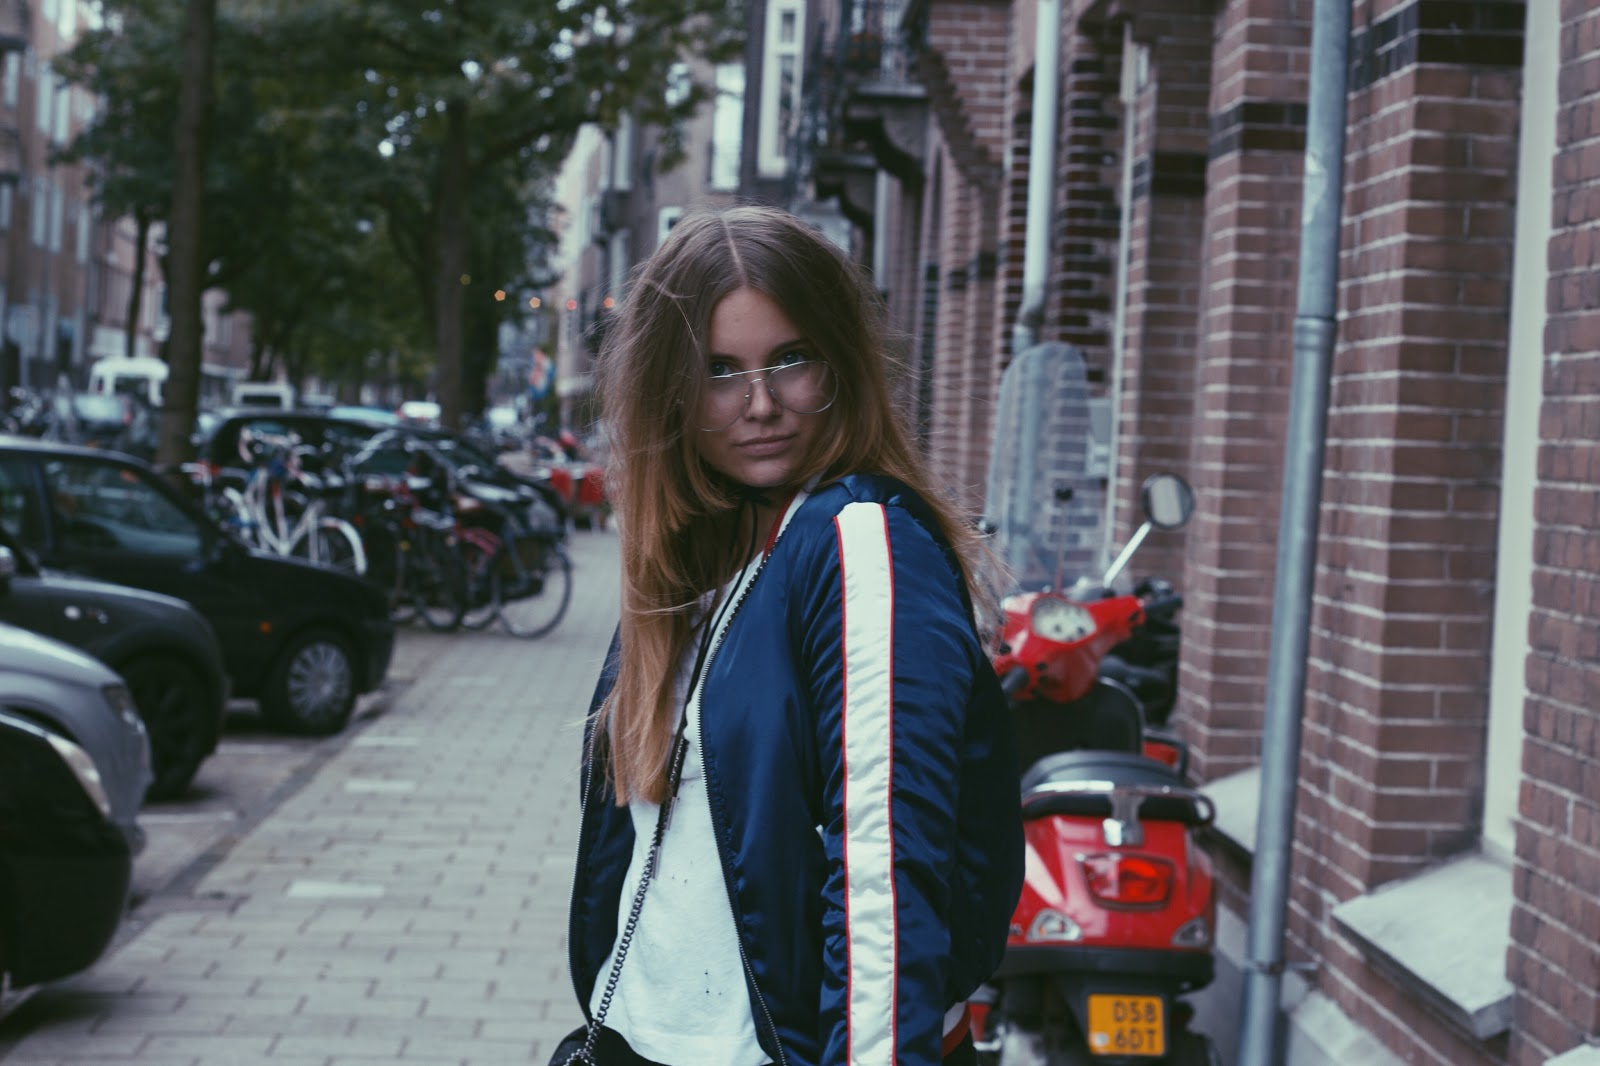 blogger, blog, dominique, candido, fashion, mode, loavies, vans, sneakers, obsession, isabelli, zadig et voltaire, asos, jeans, jacket, glasses, outfit, post, mode